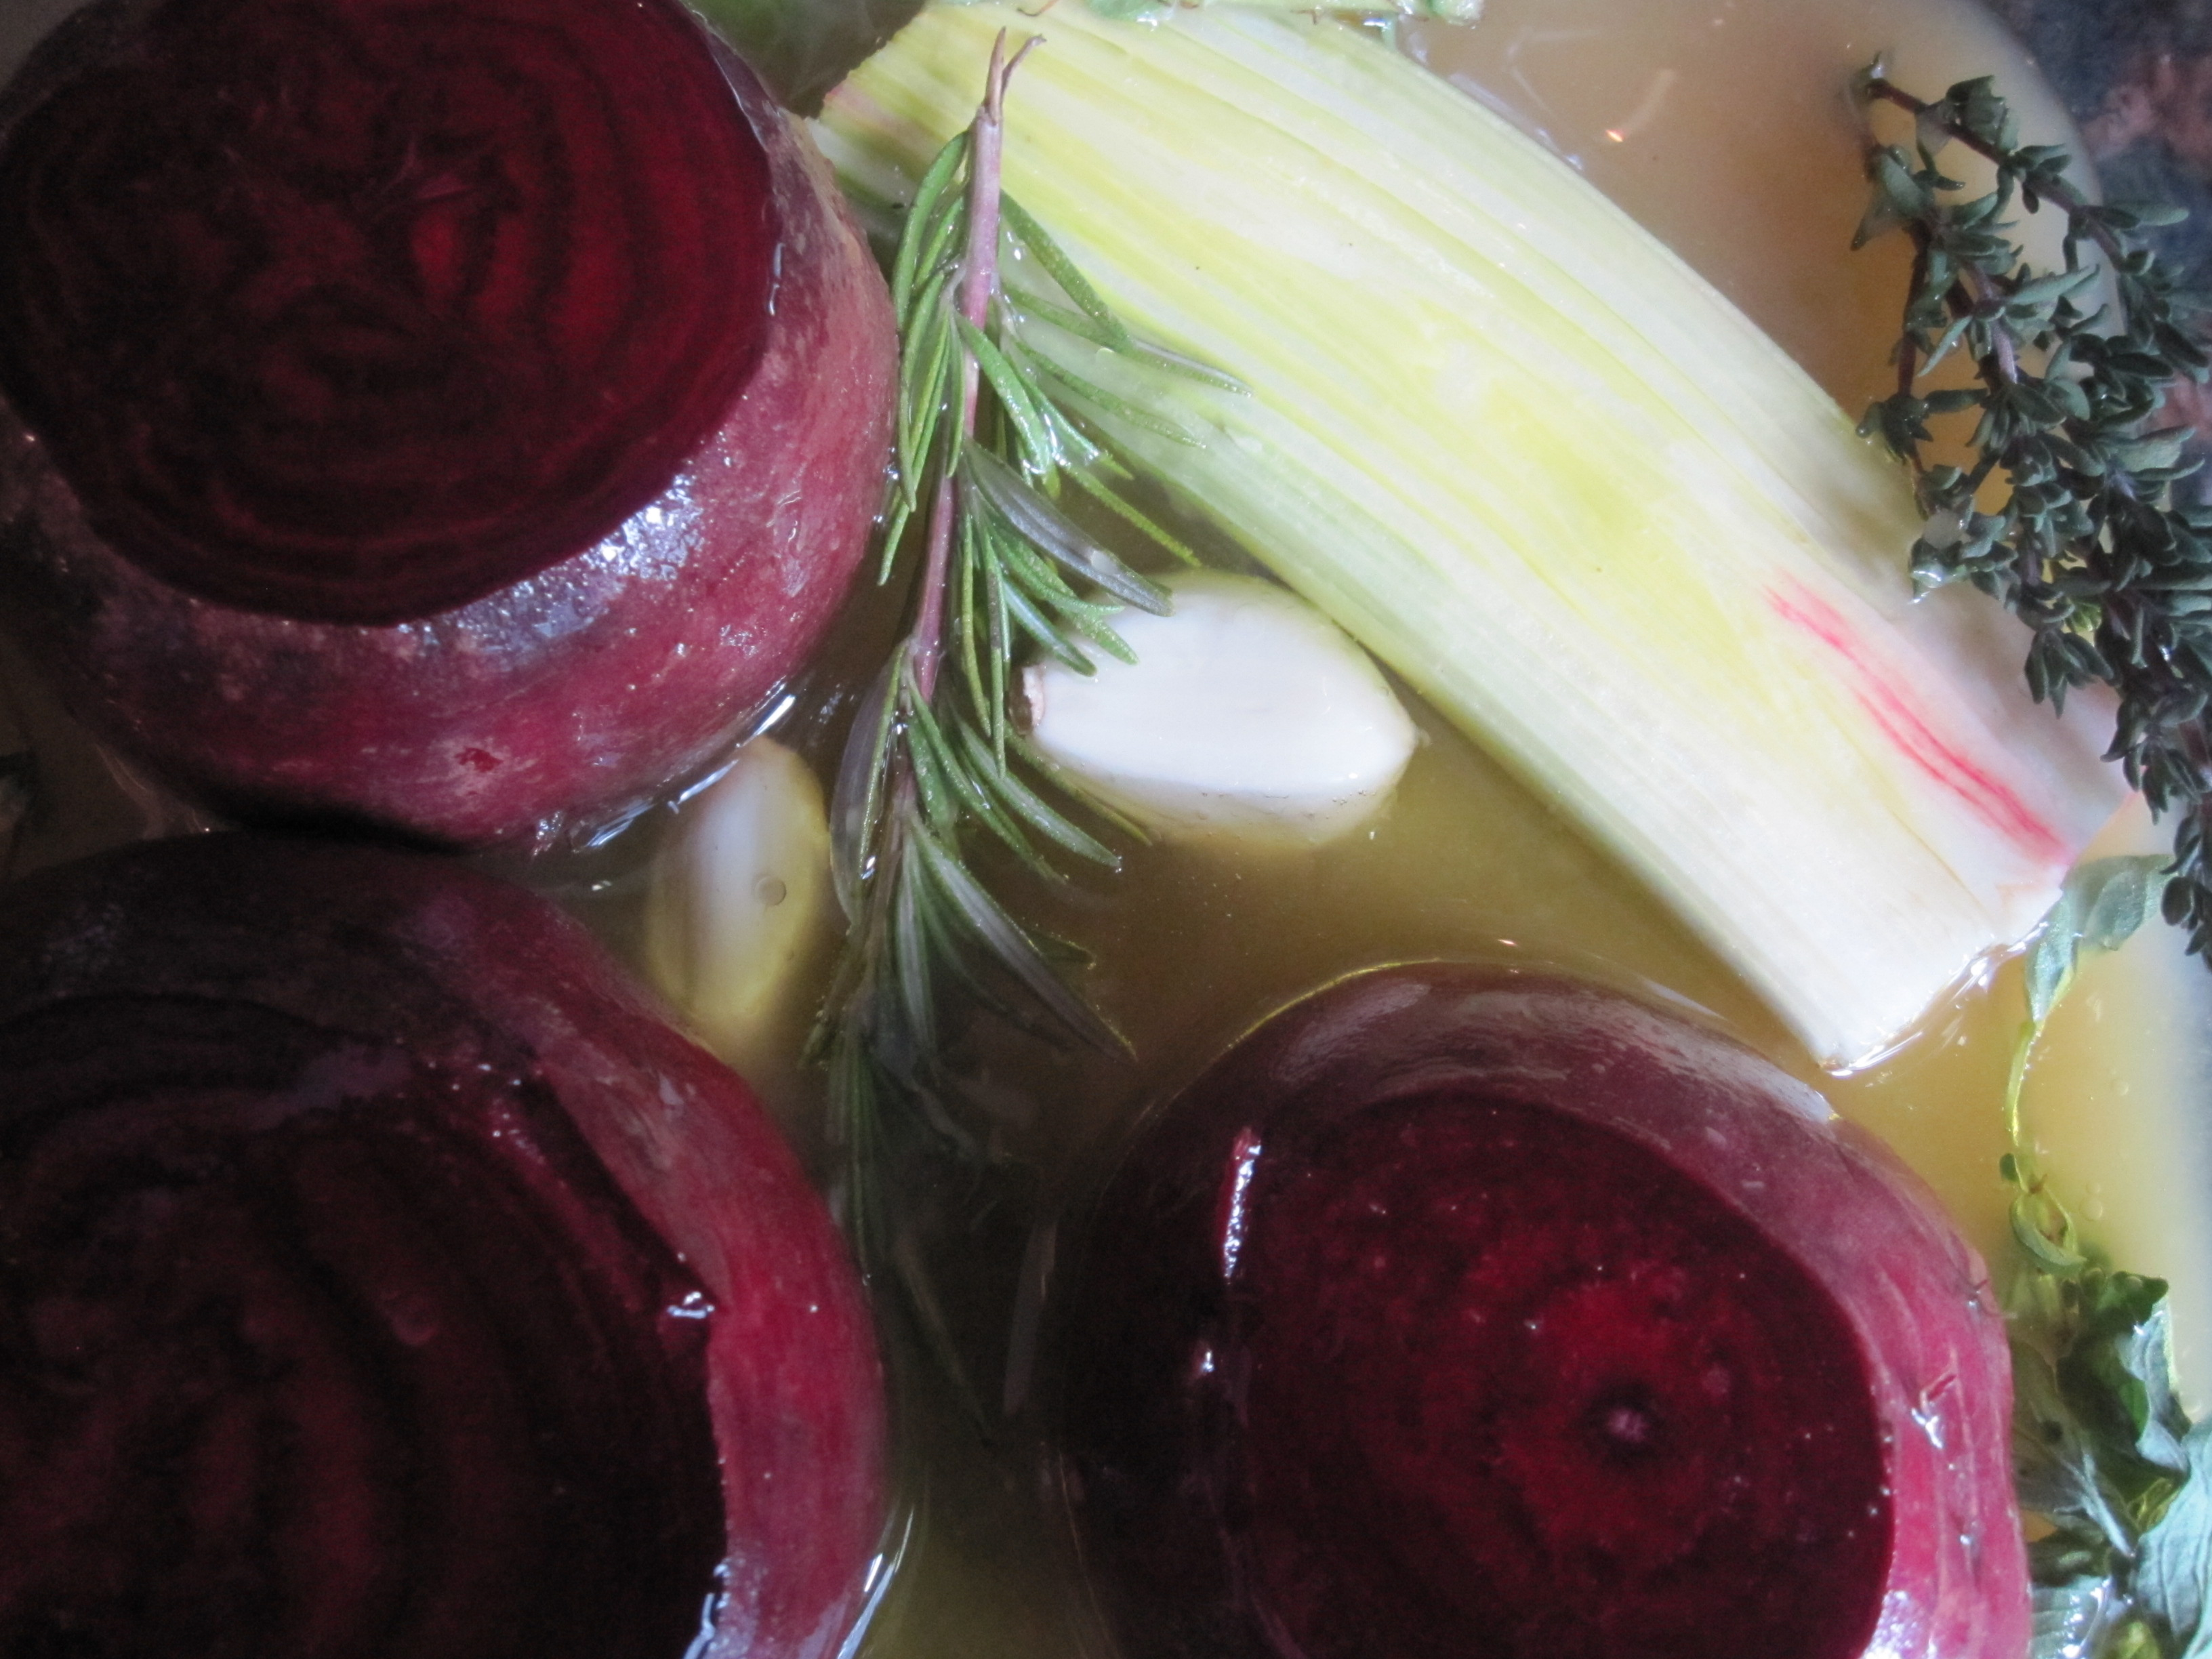 beetroot essay Essay on effect of ethanol on beetroot membrane the effect of different concentrations of ethanol on the permeability of beetroot cell membranes prediction: by exposing a membrane to a solvent, ethanol, it will increase its permeability.